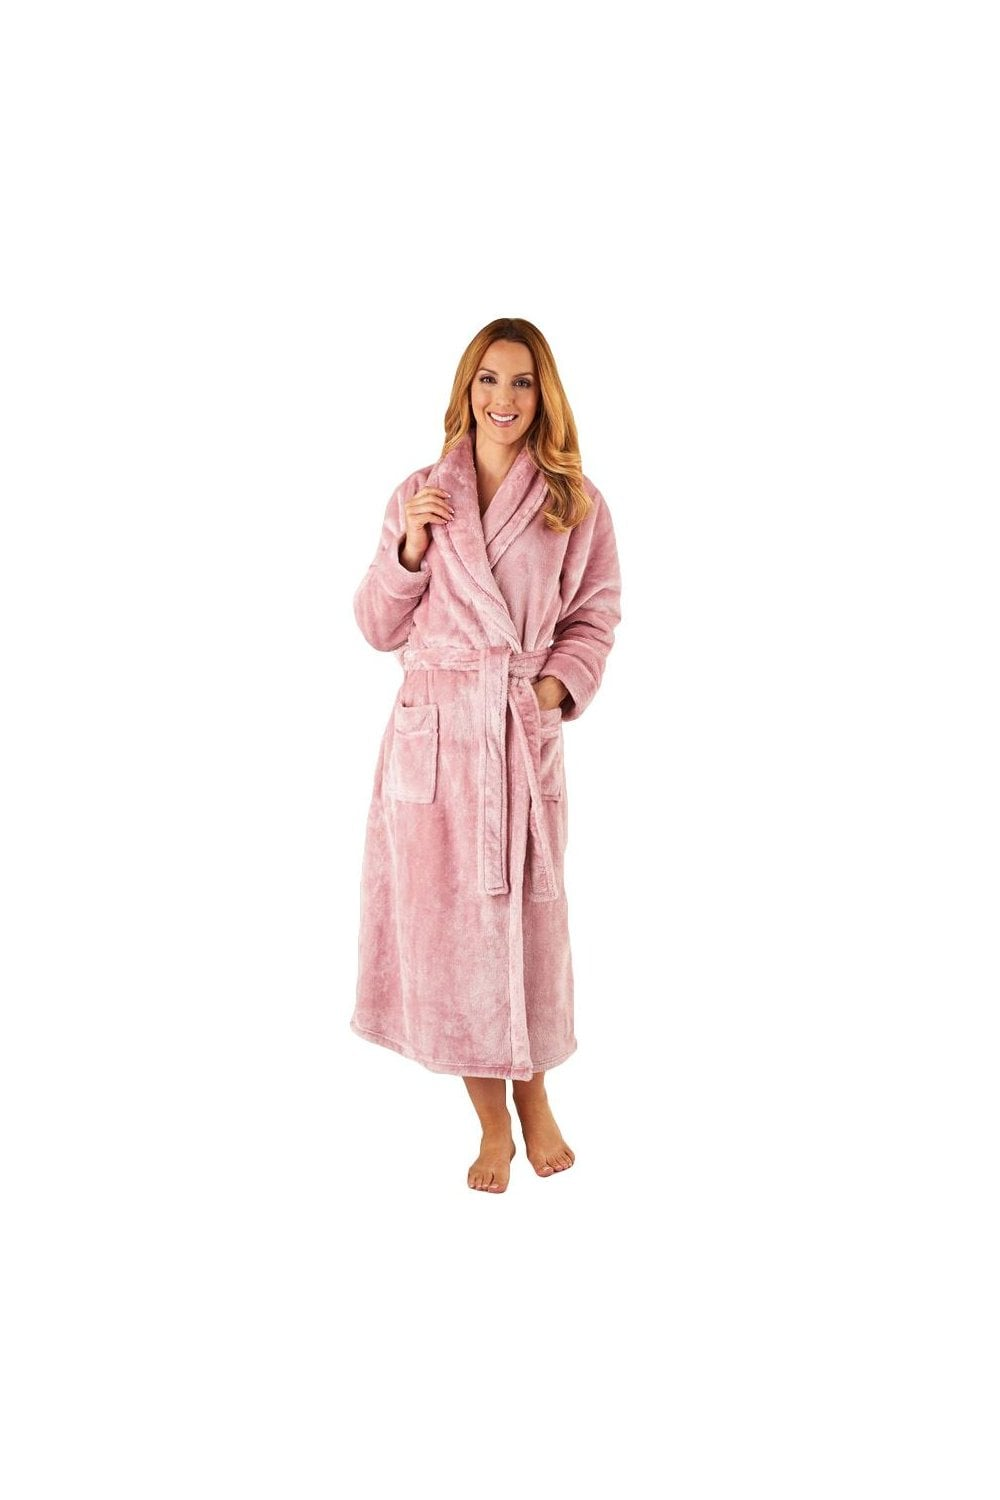 Slenderella Luxury Fleece Dressing Gown - Pink - Nightwear   Robes from  Potters of Buxton UK d116d0cf6